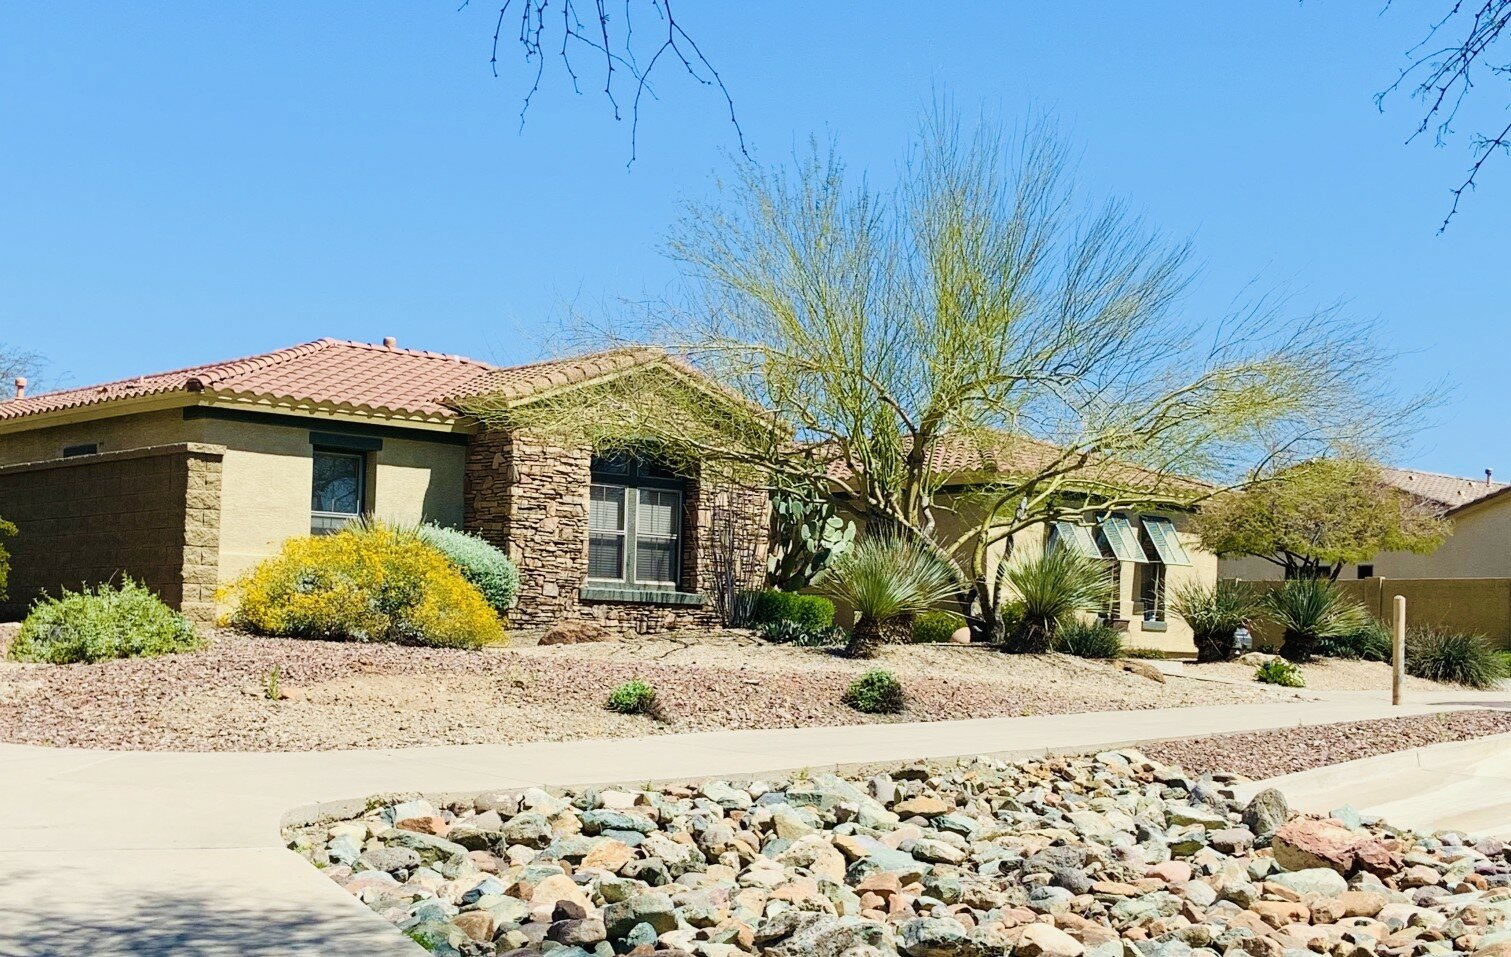 Spot a Scam When Buying or Selling Real Estate in Phoenix